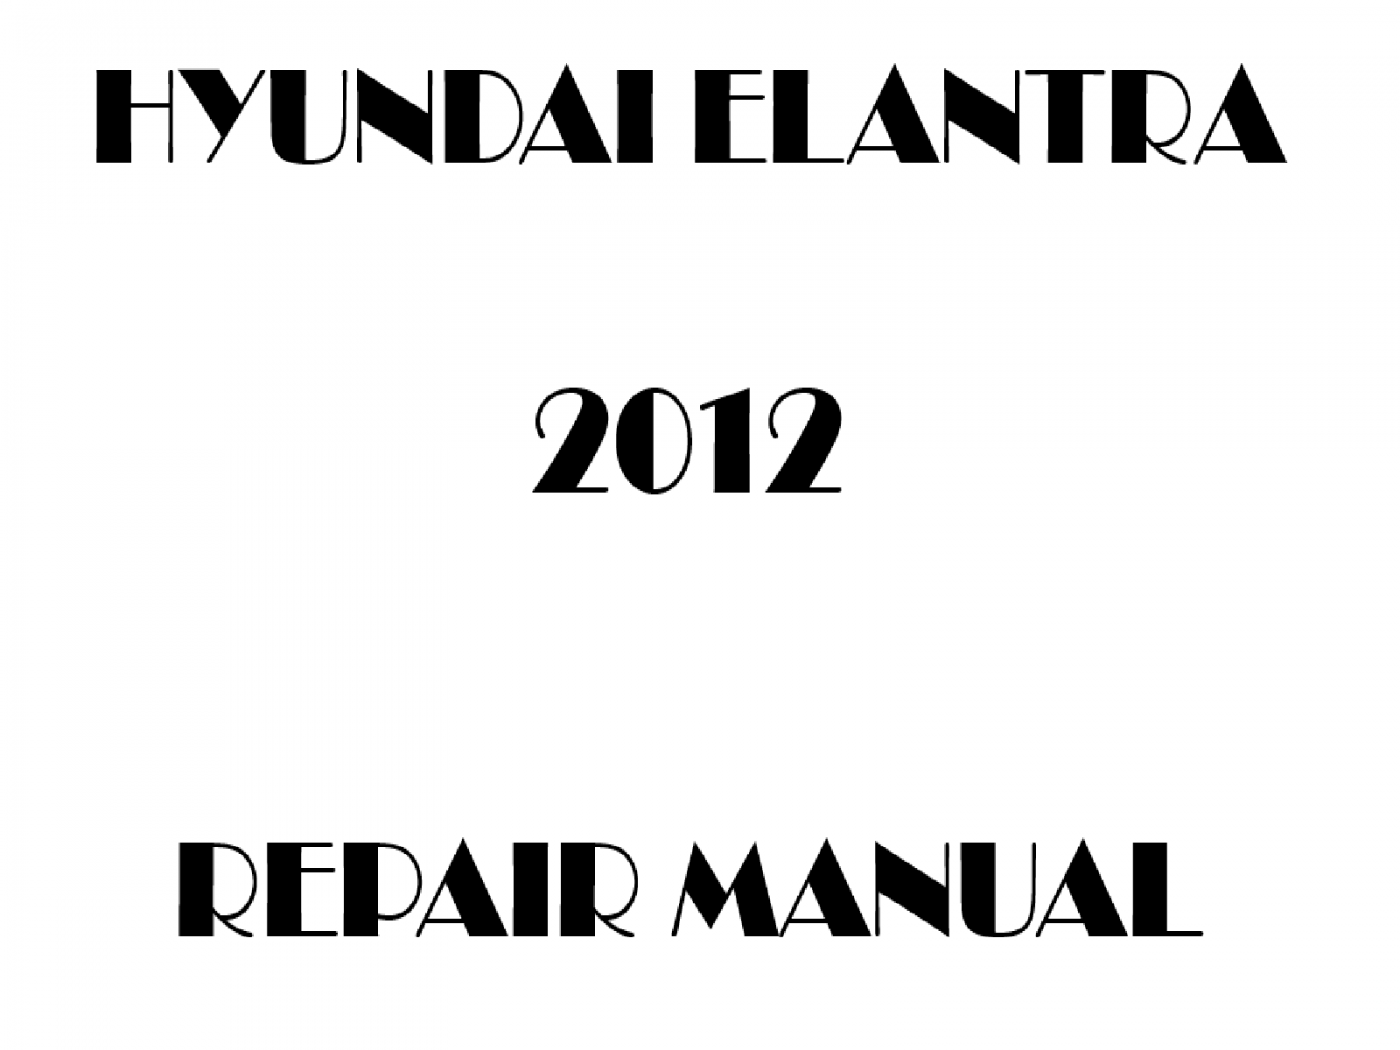 2012 Hyundai Elantra repair manual